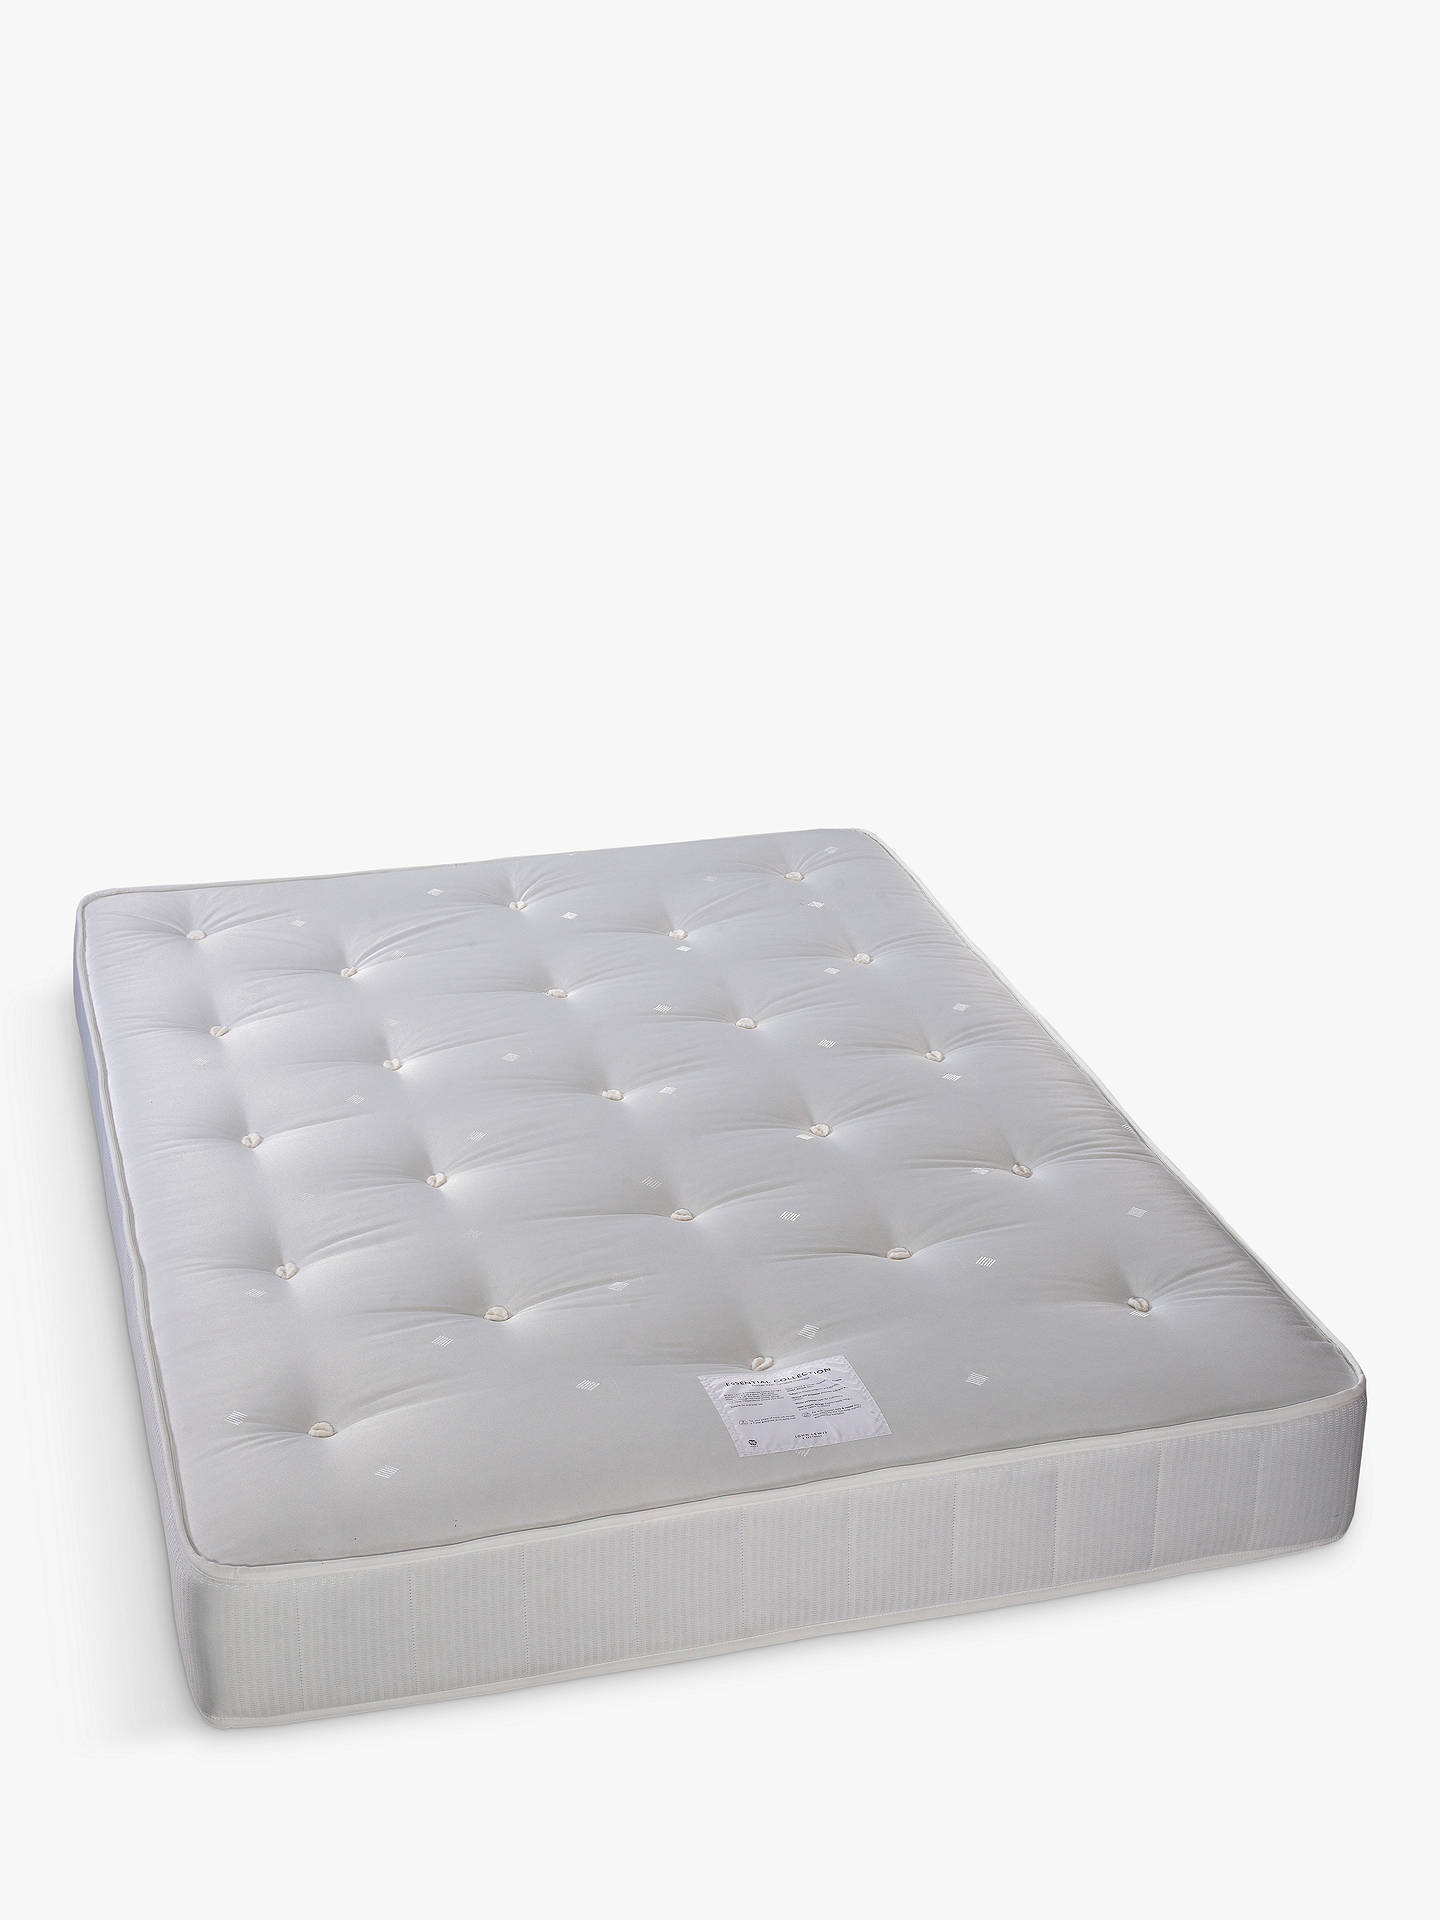 Buy John Lewis & Partners Essentials Collection Pocket 1000, Ortho Support, Pocket Spring Turnable Mattress, Double Online at johnlewis.com